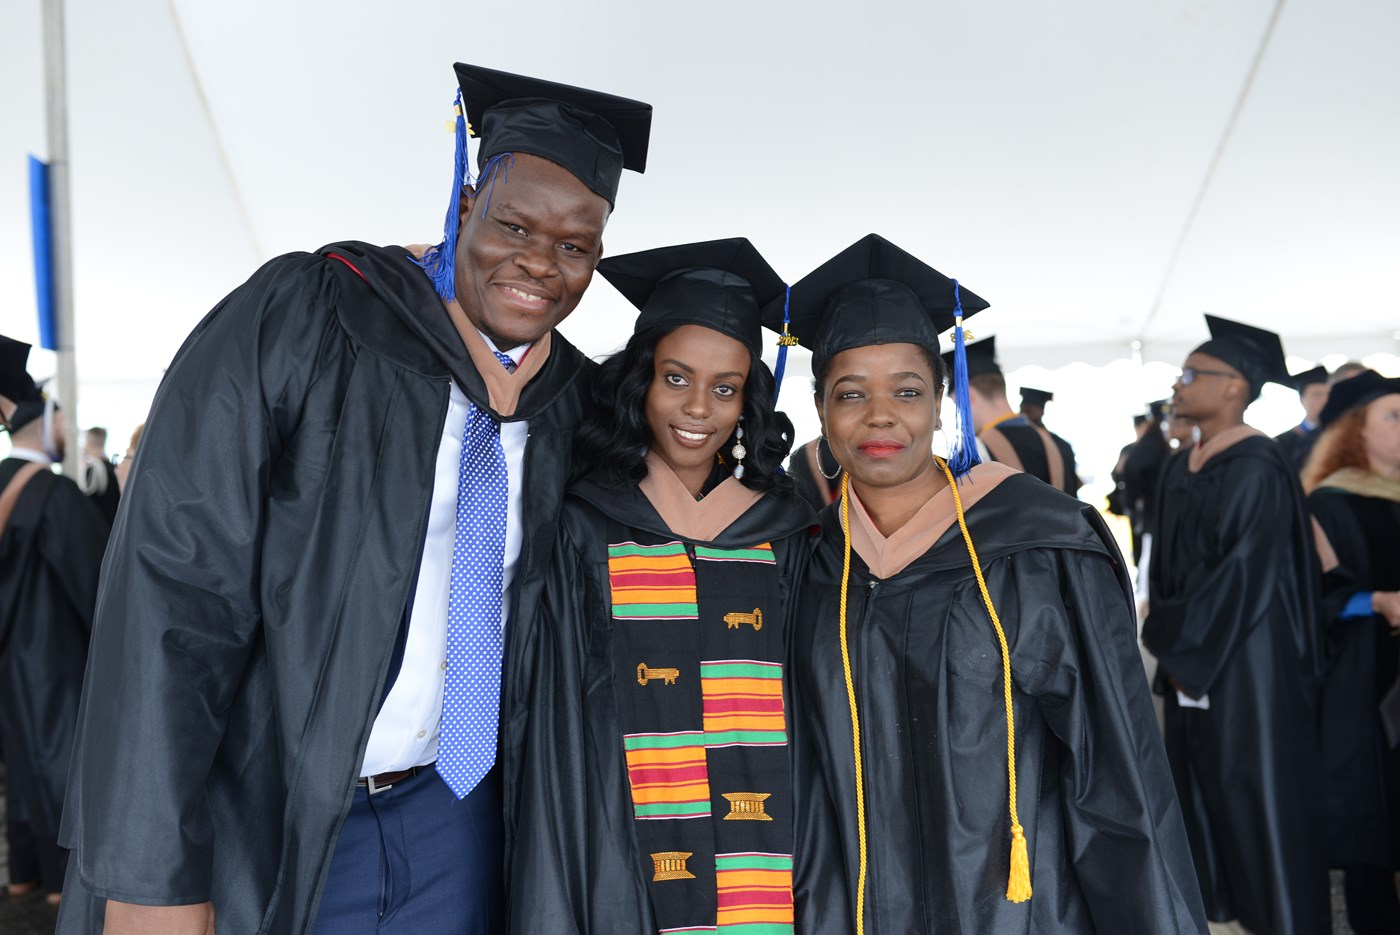 female graduating student posing with family at 2018 Commencement ceremonies.